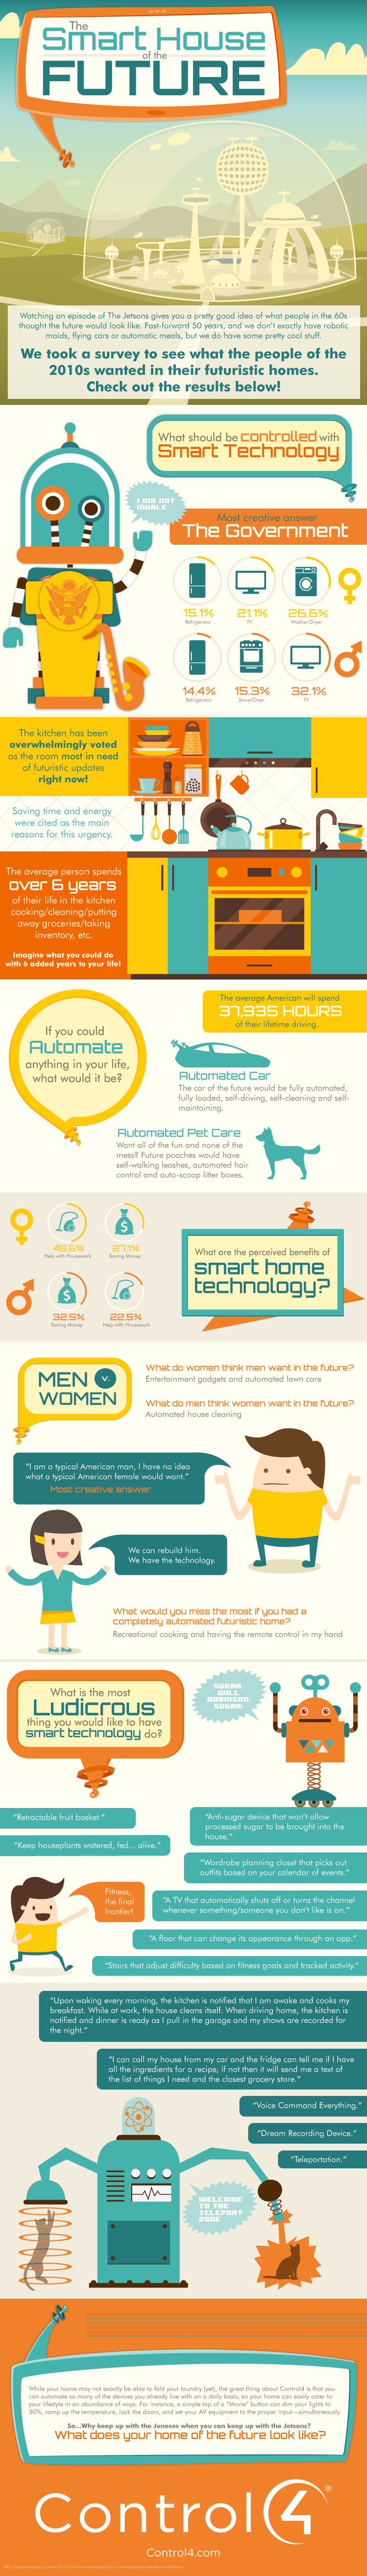 The Smart House Of The Future Infographic Home